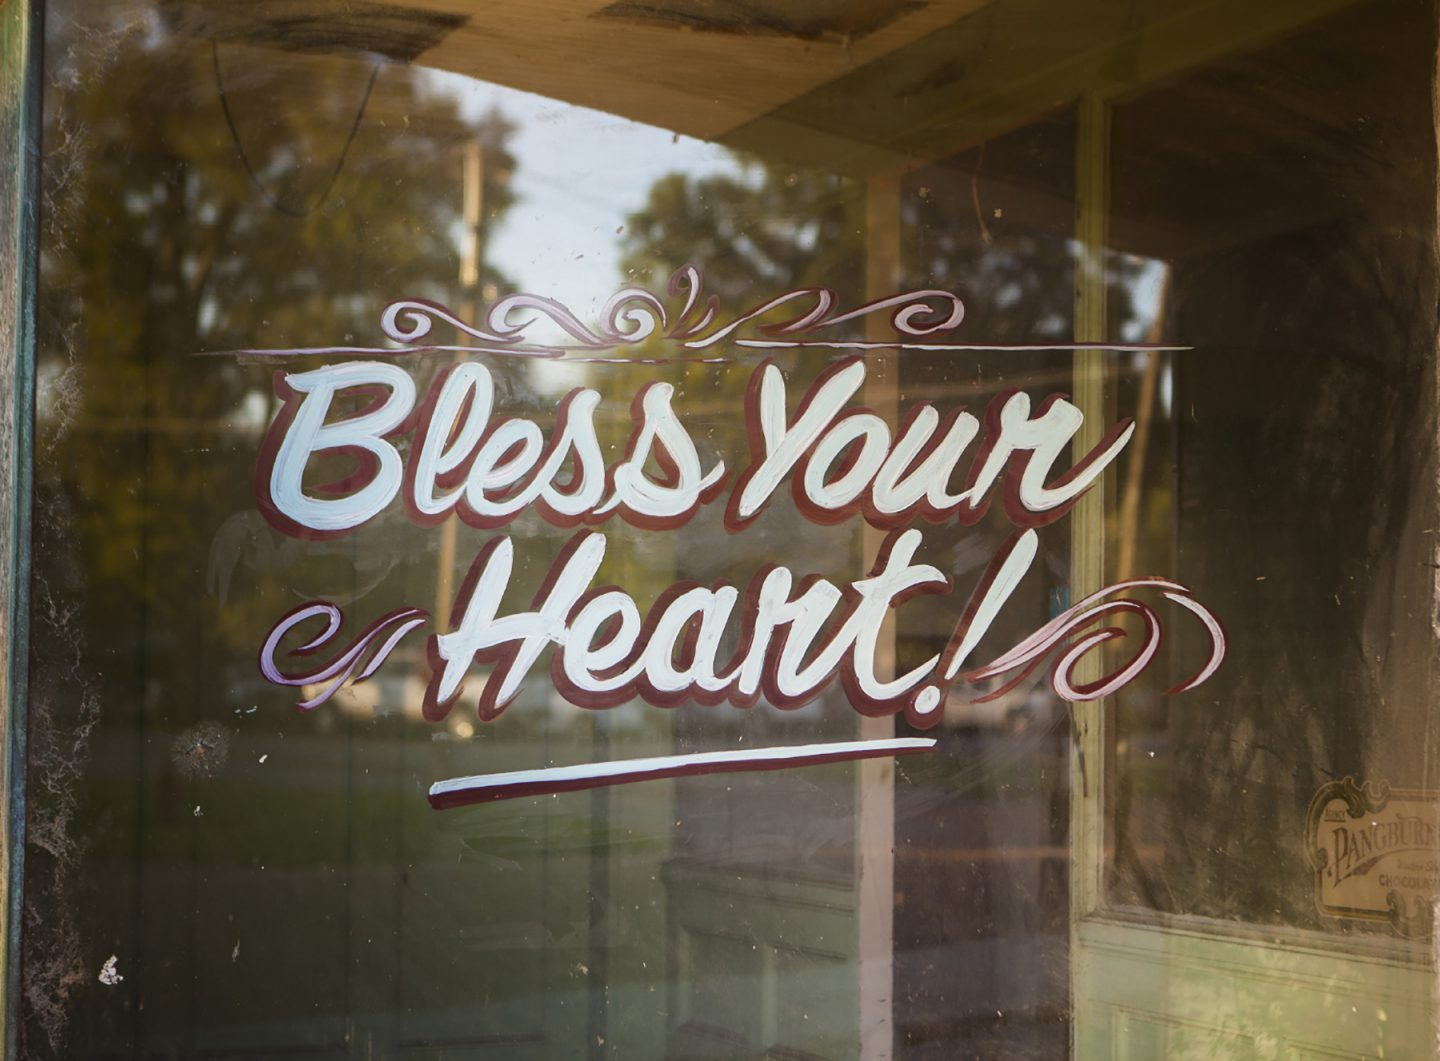 iGNANT-Photography-Grant-Ellis-Bless-Your-Heart-27